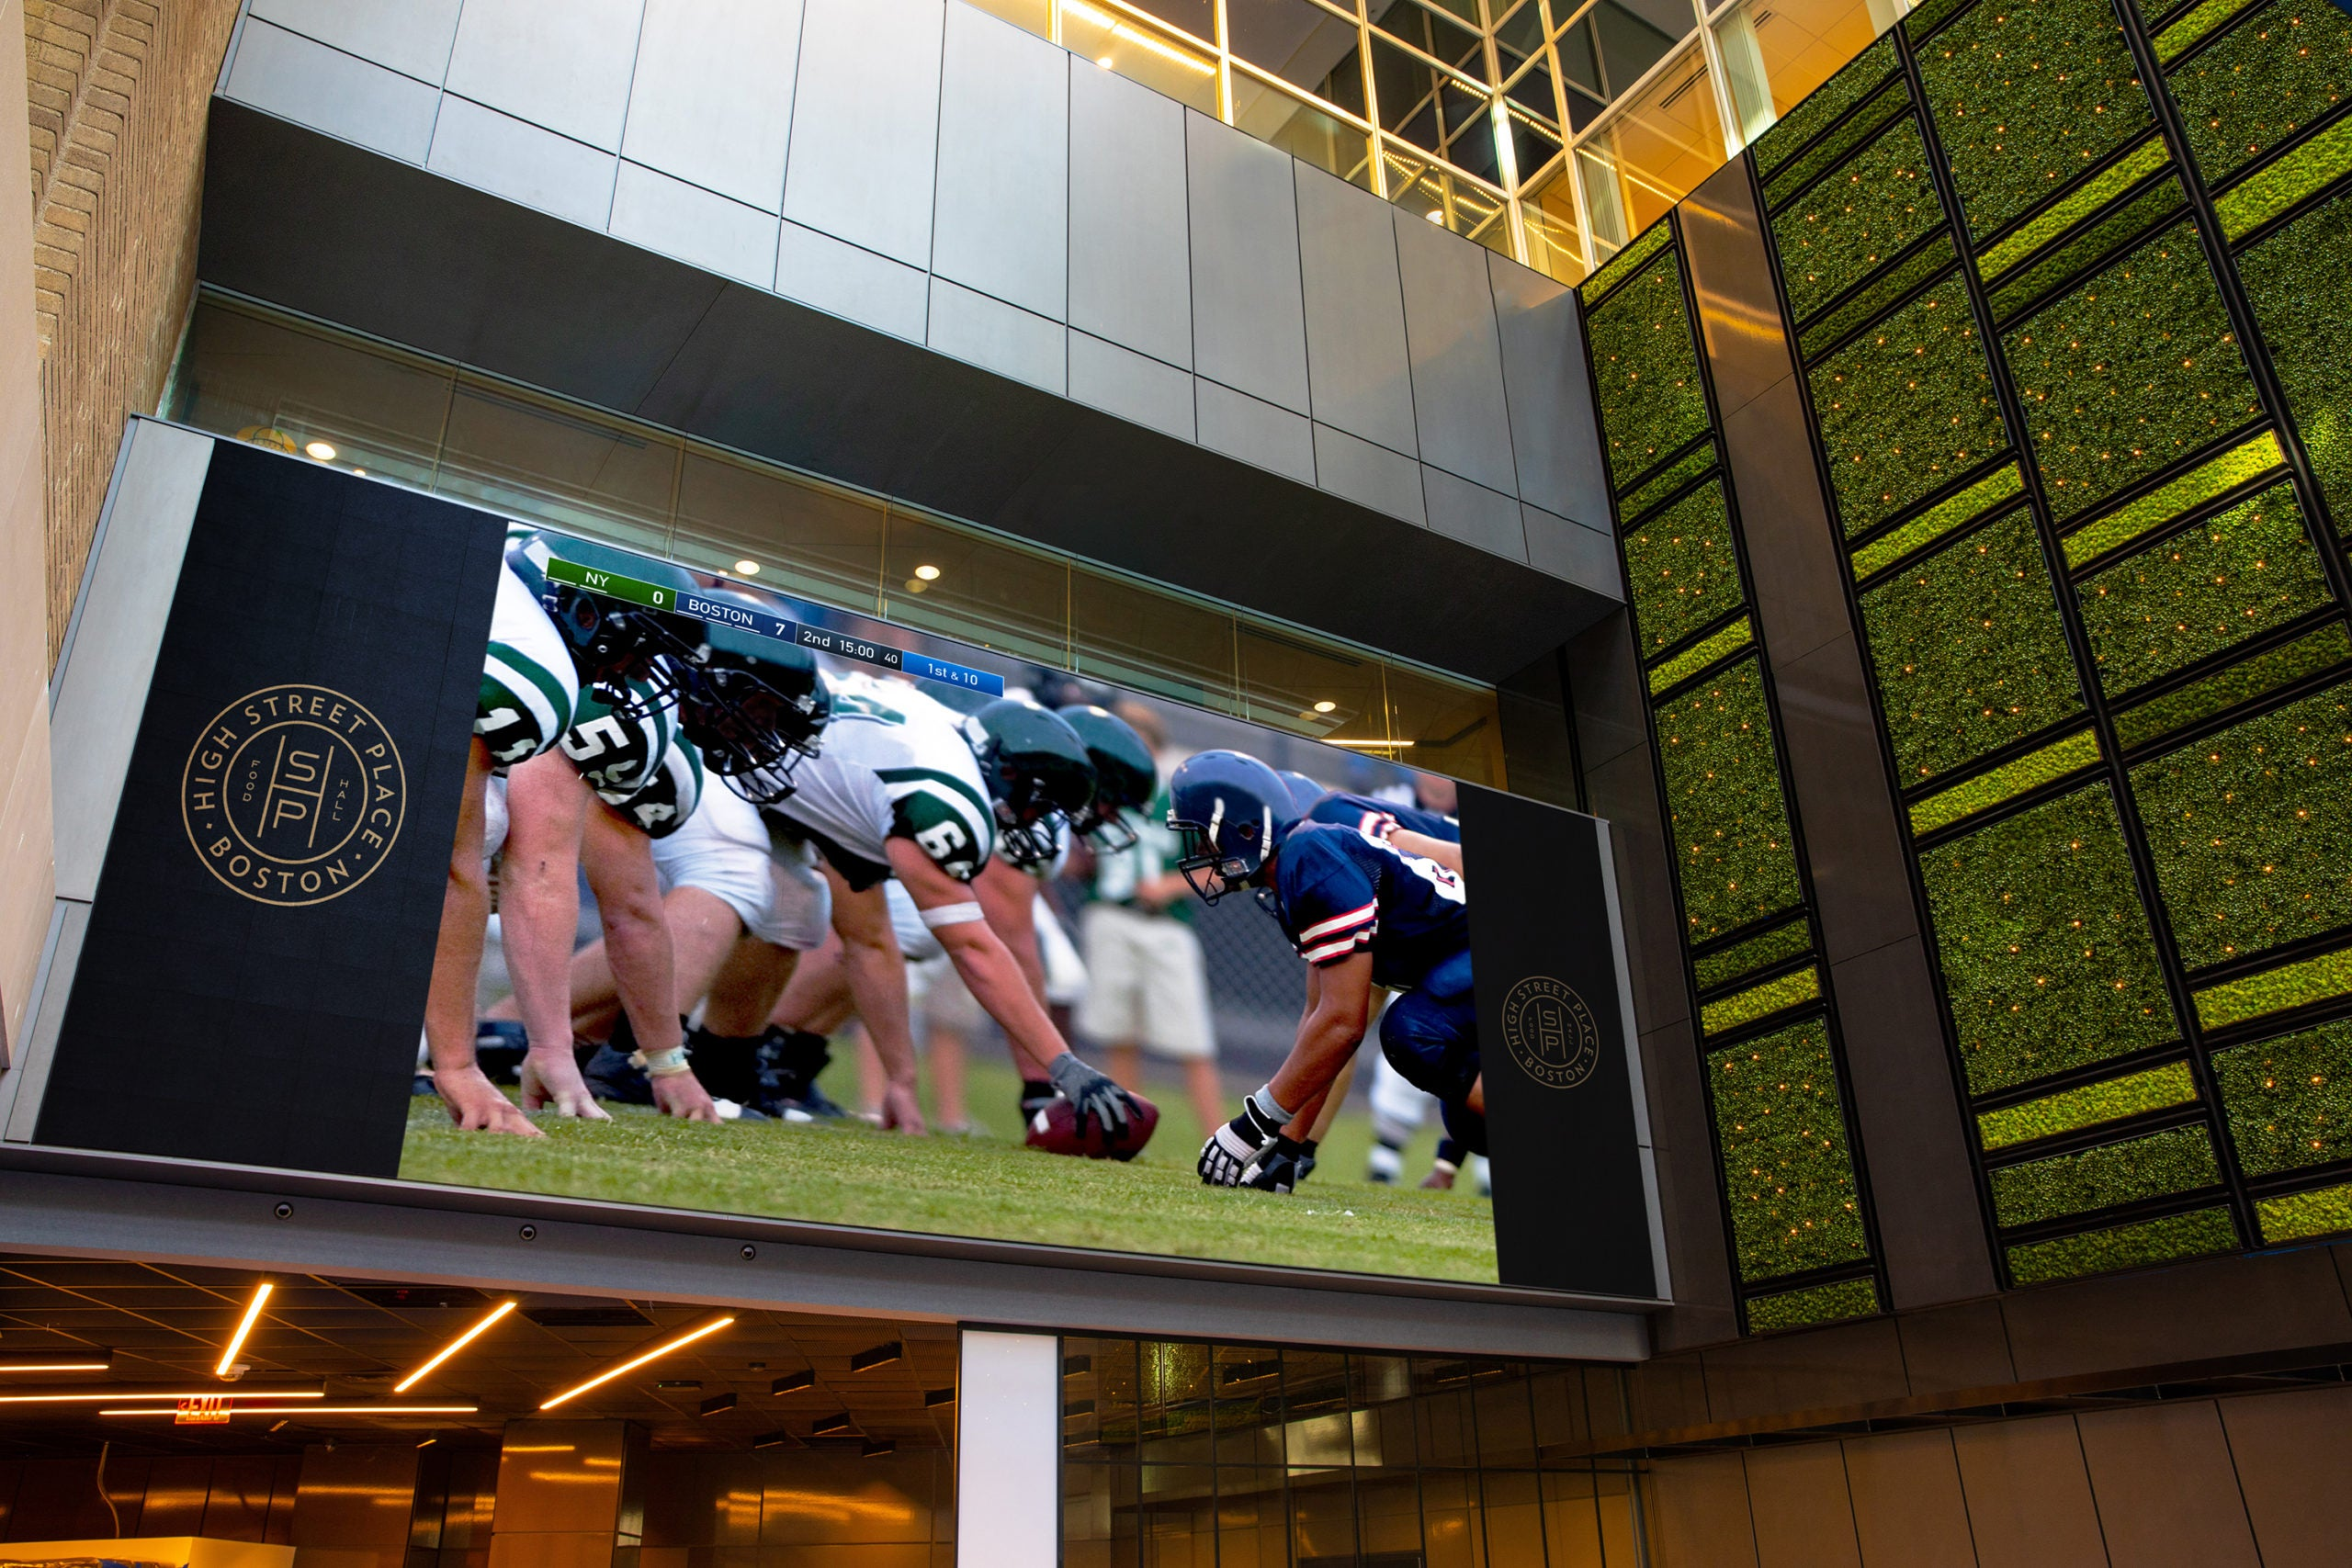 Video entertainment wall at High Street Place